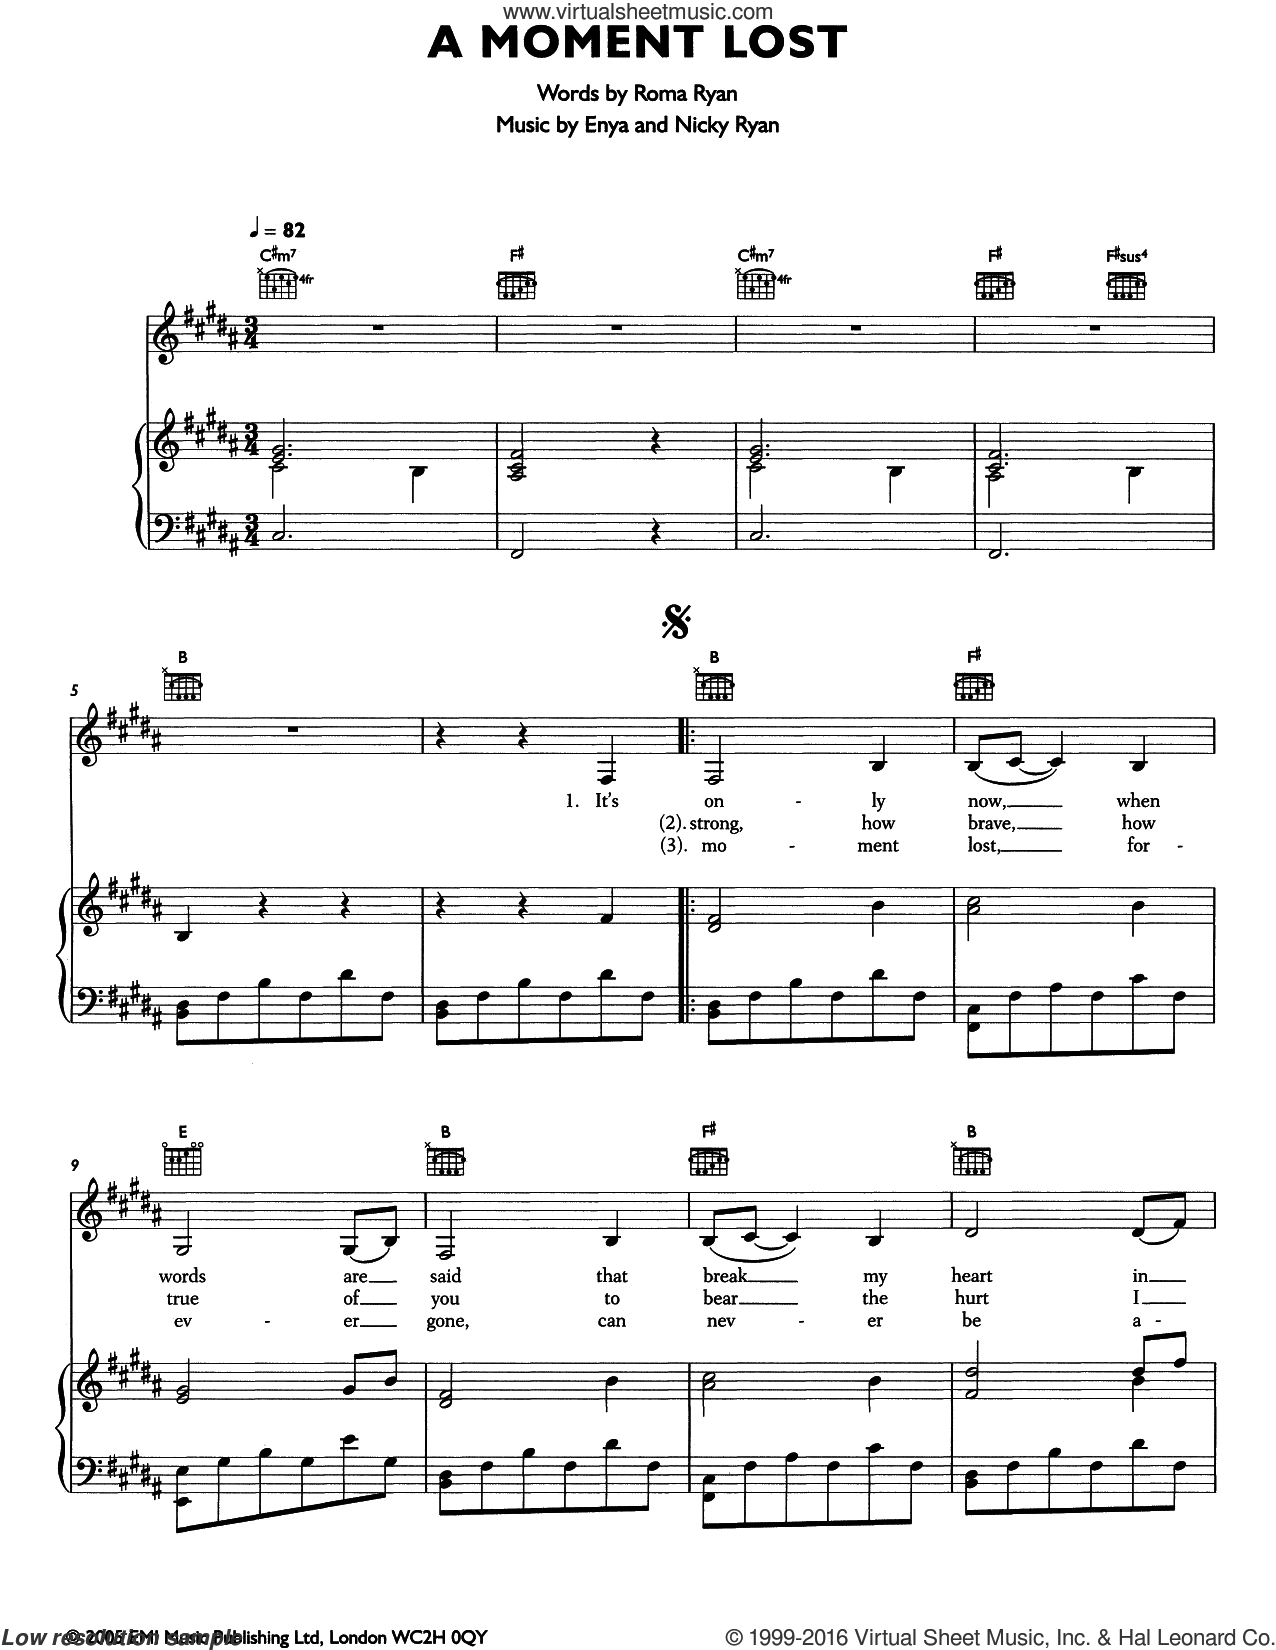 A Moment Lost sheet music for voice, piano or guitar by Roma Ryan, Enya and Nicky Ryan. Score Image Preview.